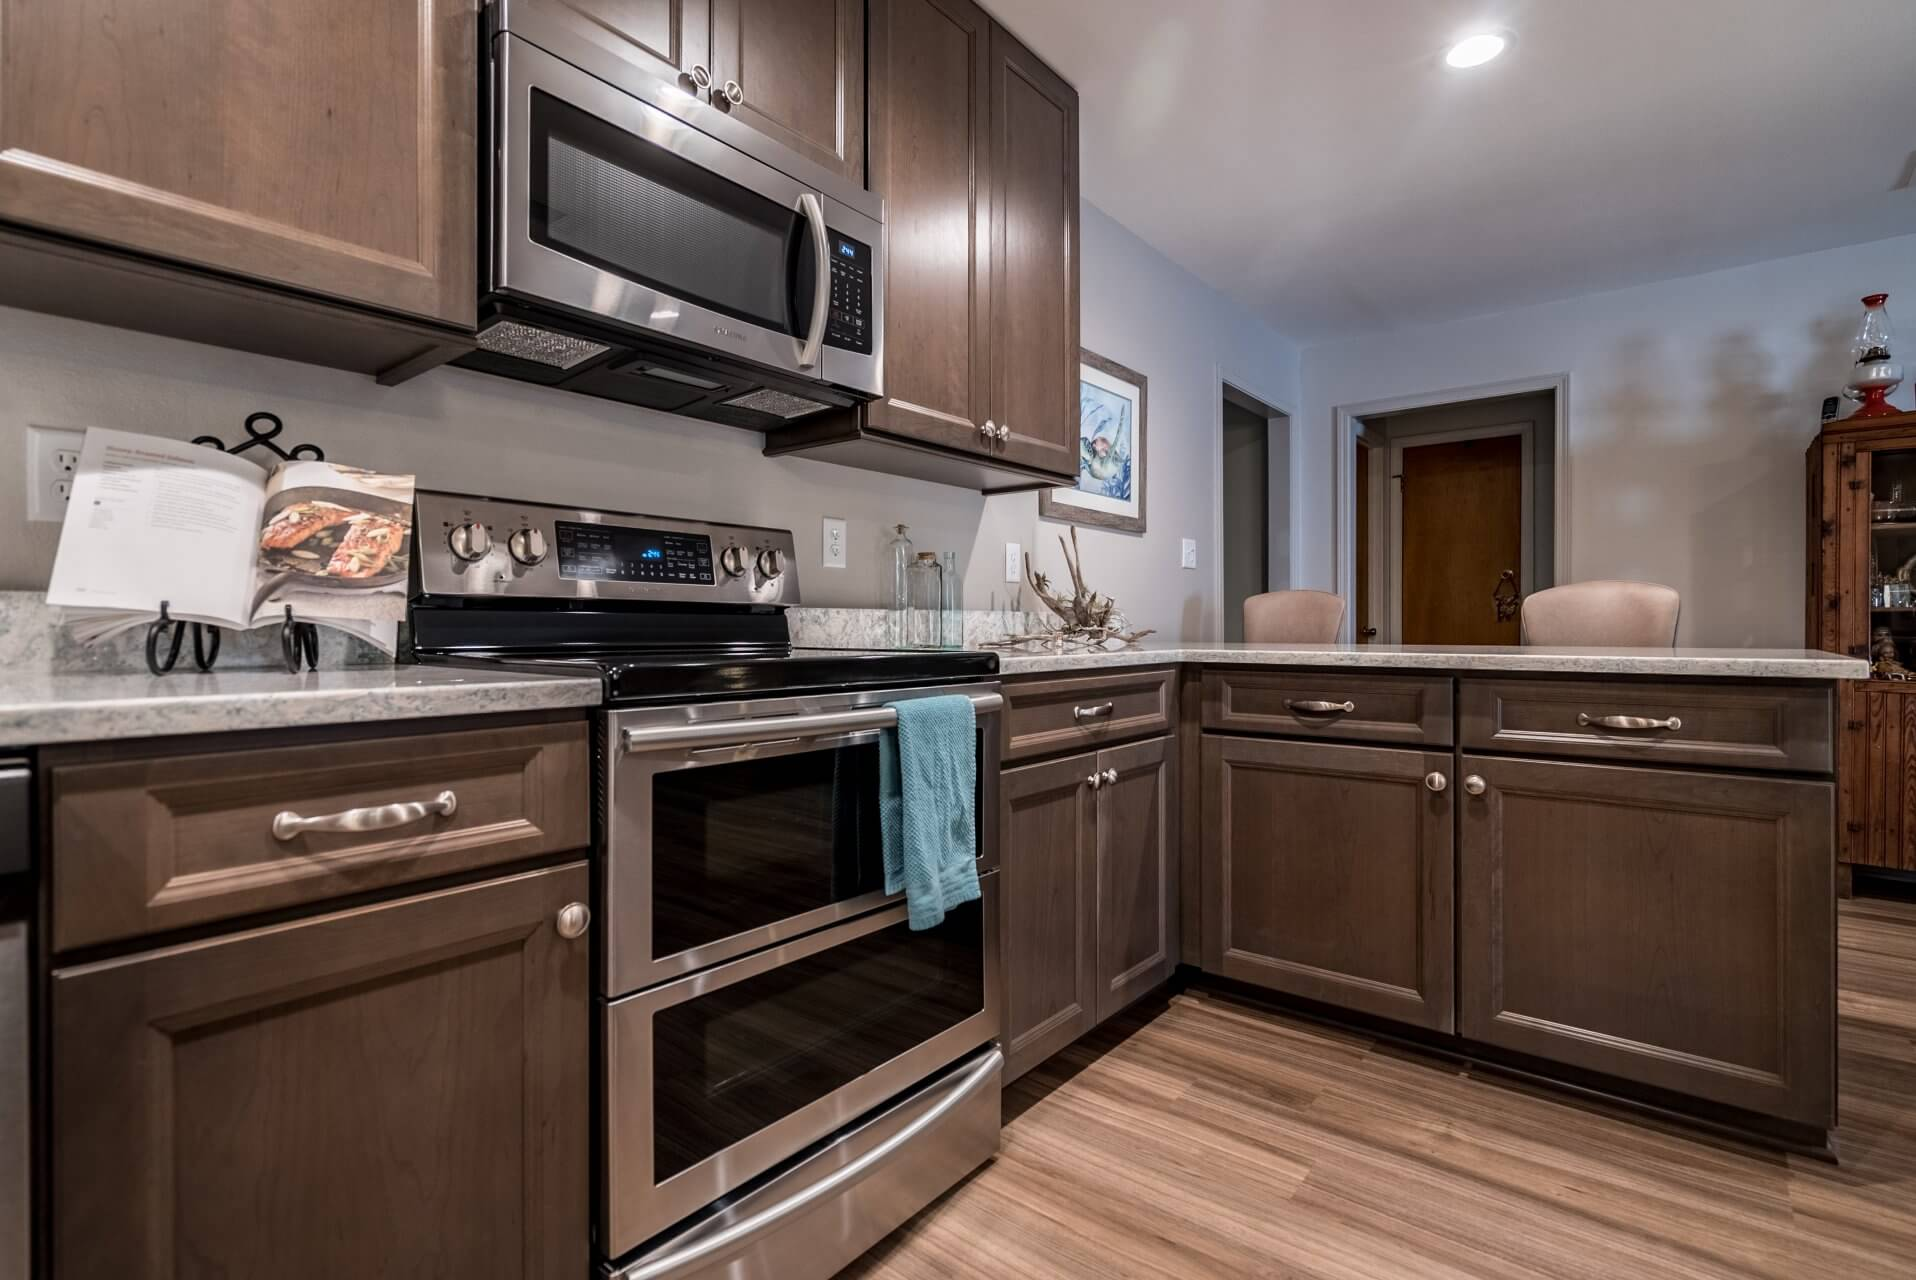 Transitional Style Kitchen stainless appliances